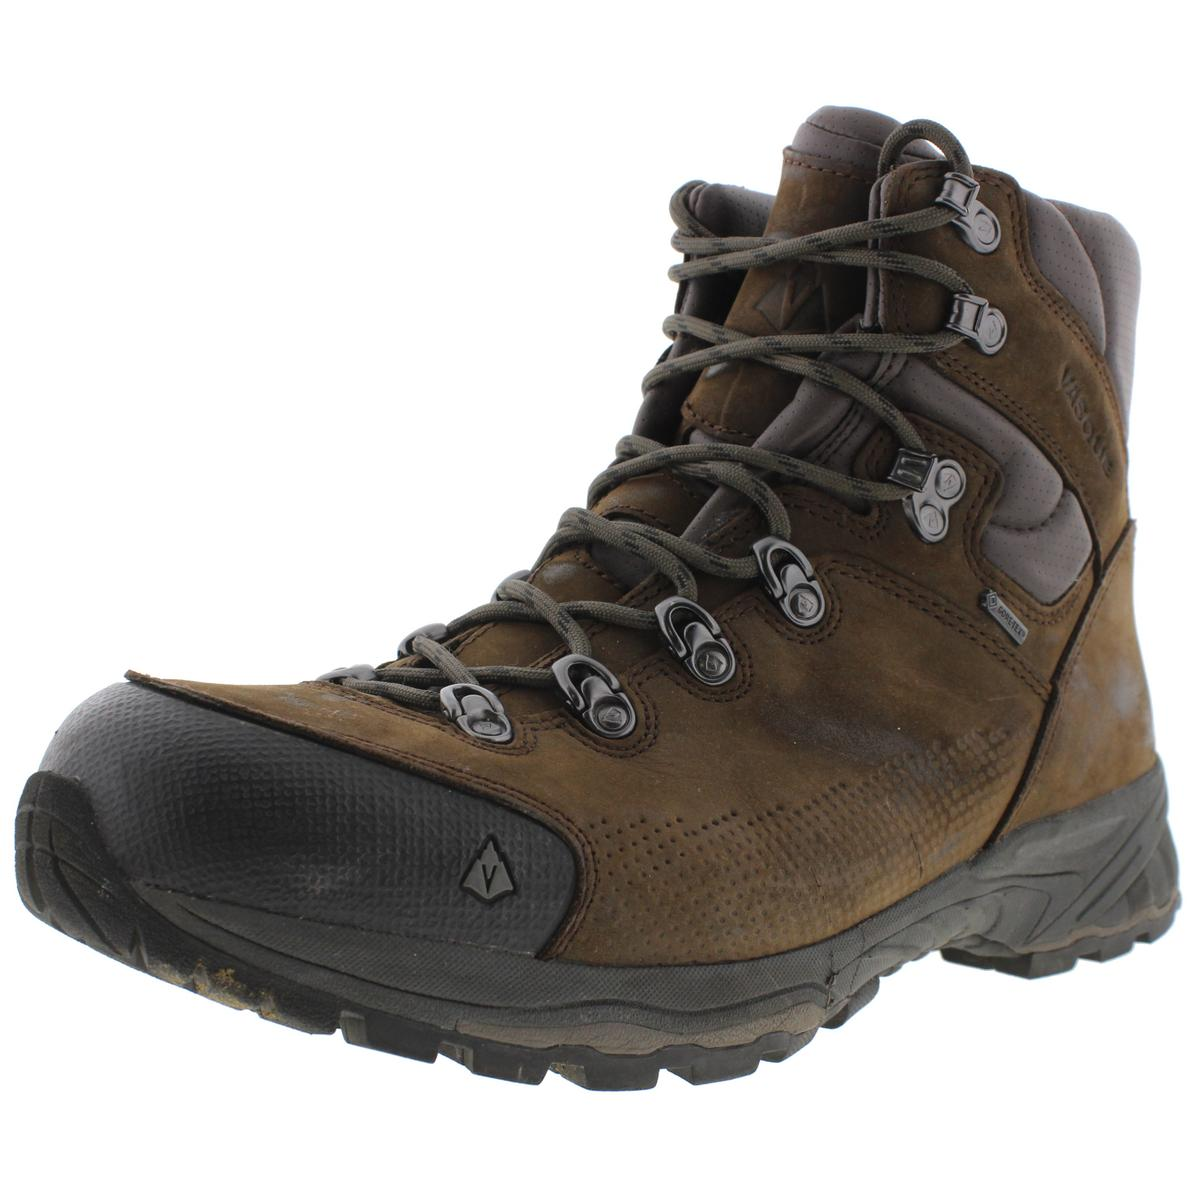 Mt Abram Hiking Shoes Review